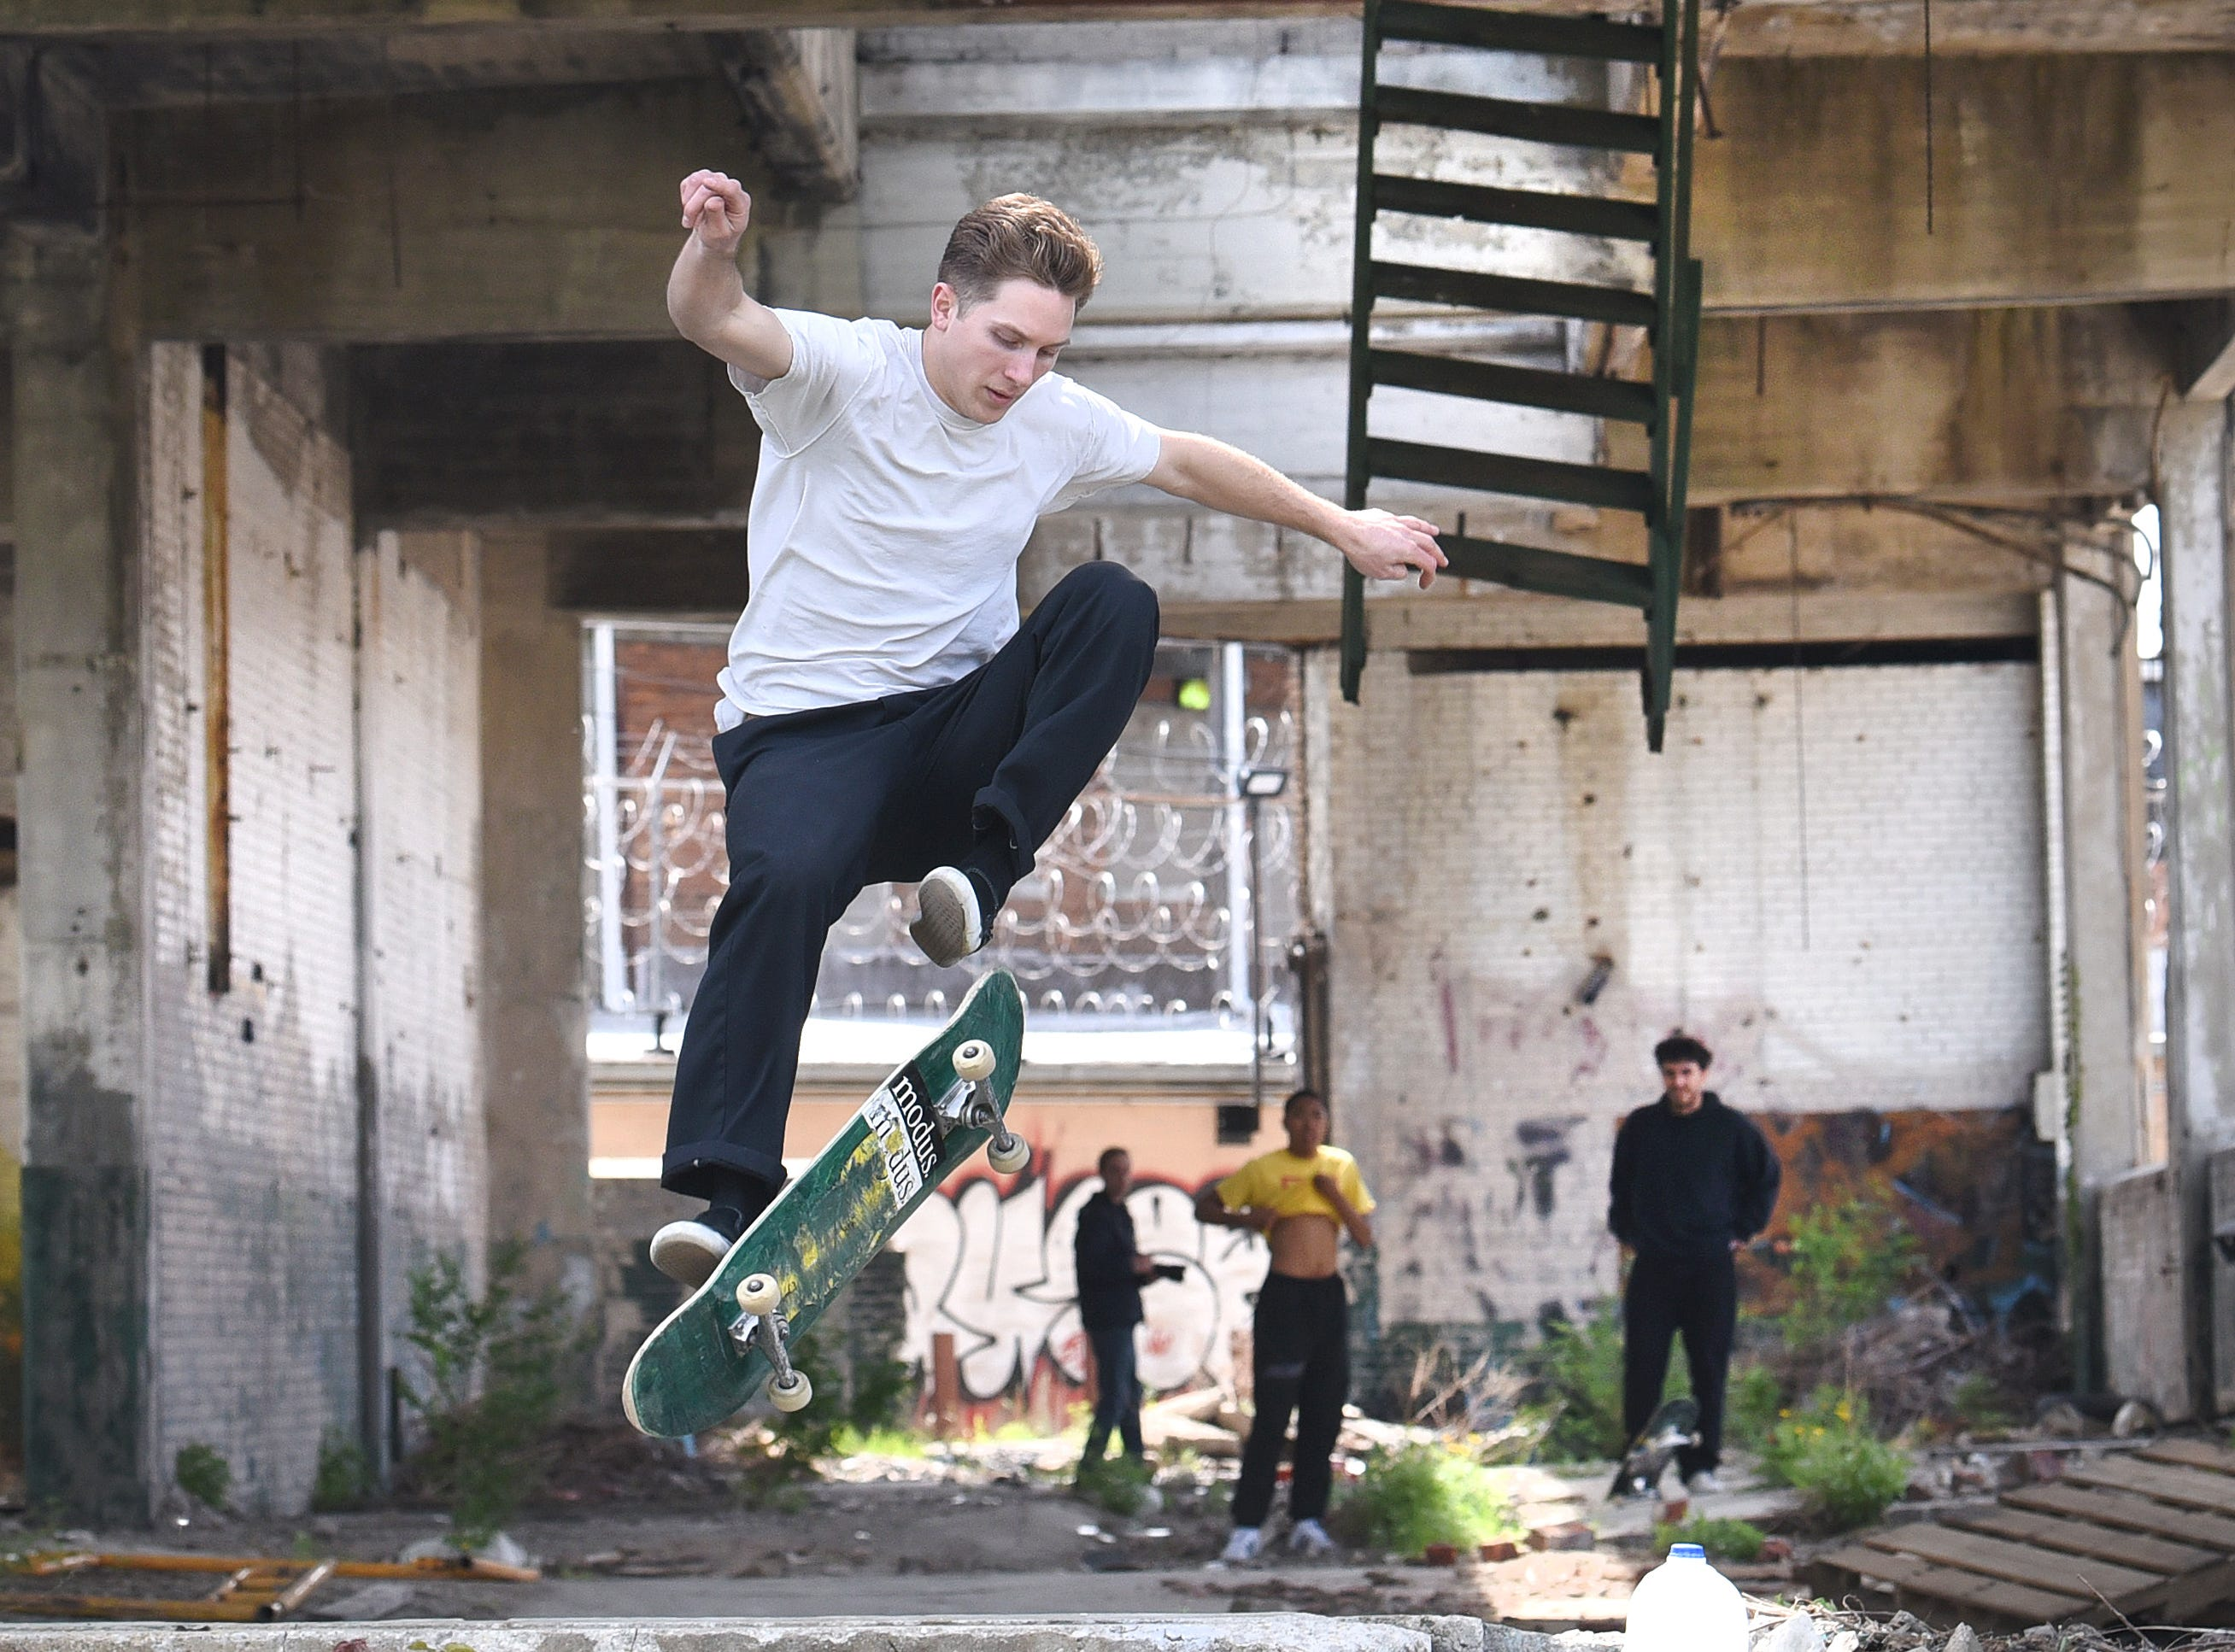 Skater Jeff Srnec, of Winnipeg, Canada, catches some air off a loading dock ramp as fellow Canadian skaters watch inside an abandoned building near Eastern Market in Detroit on May 18, 2018.